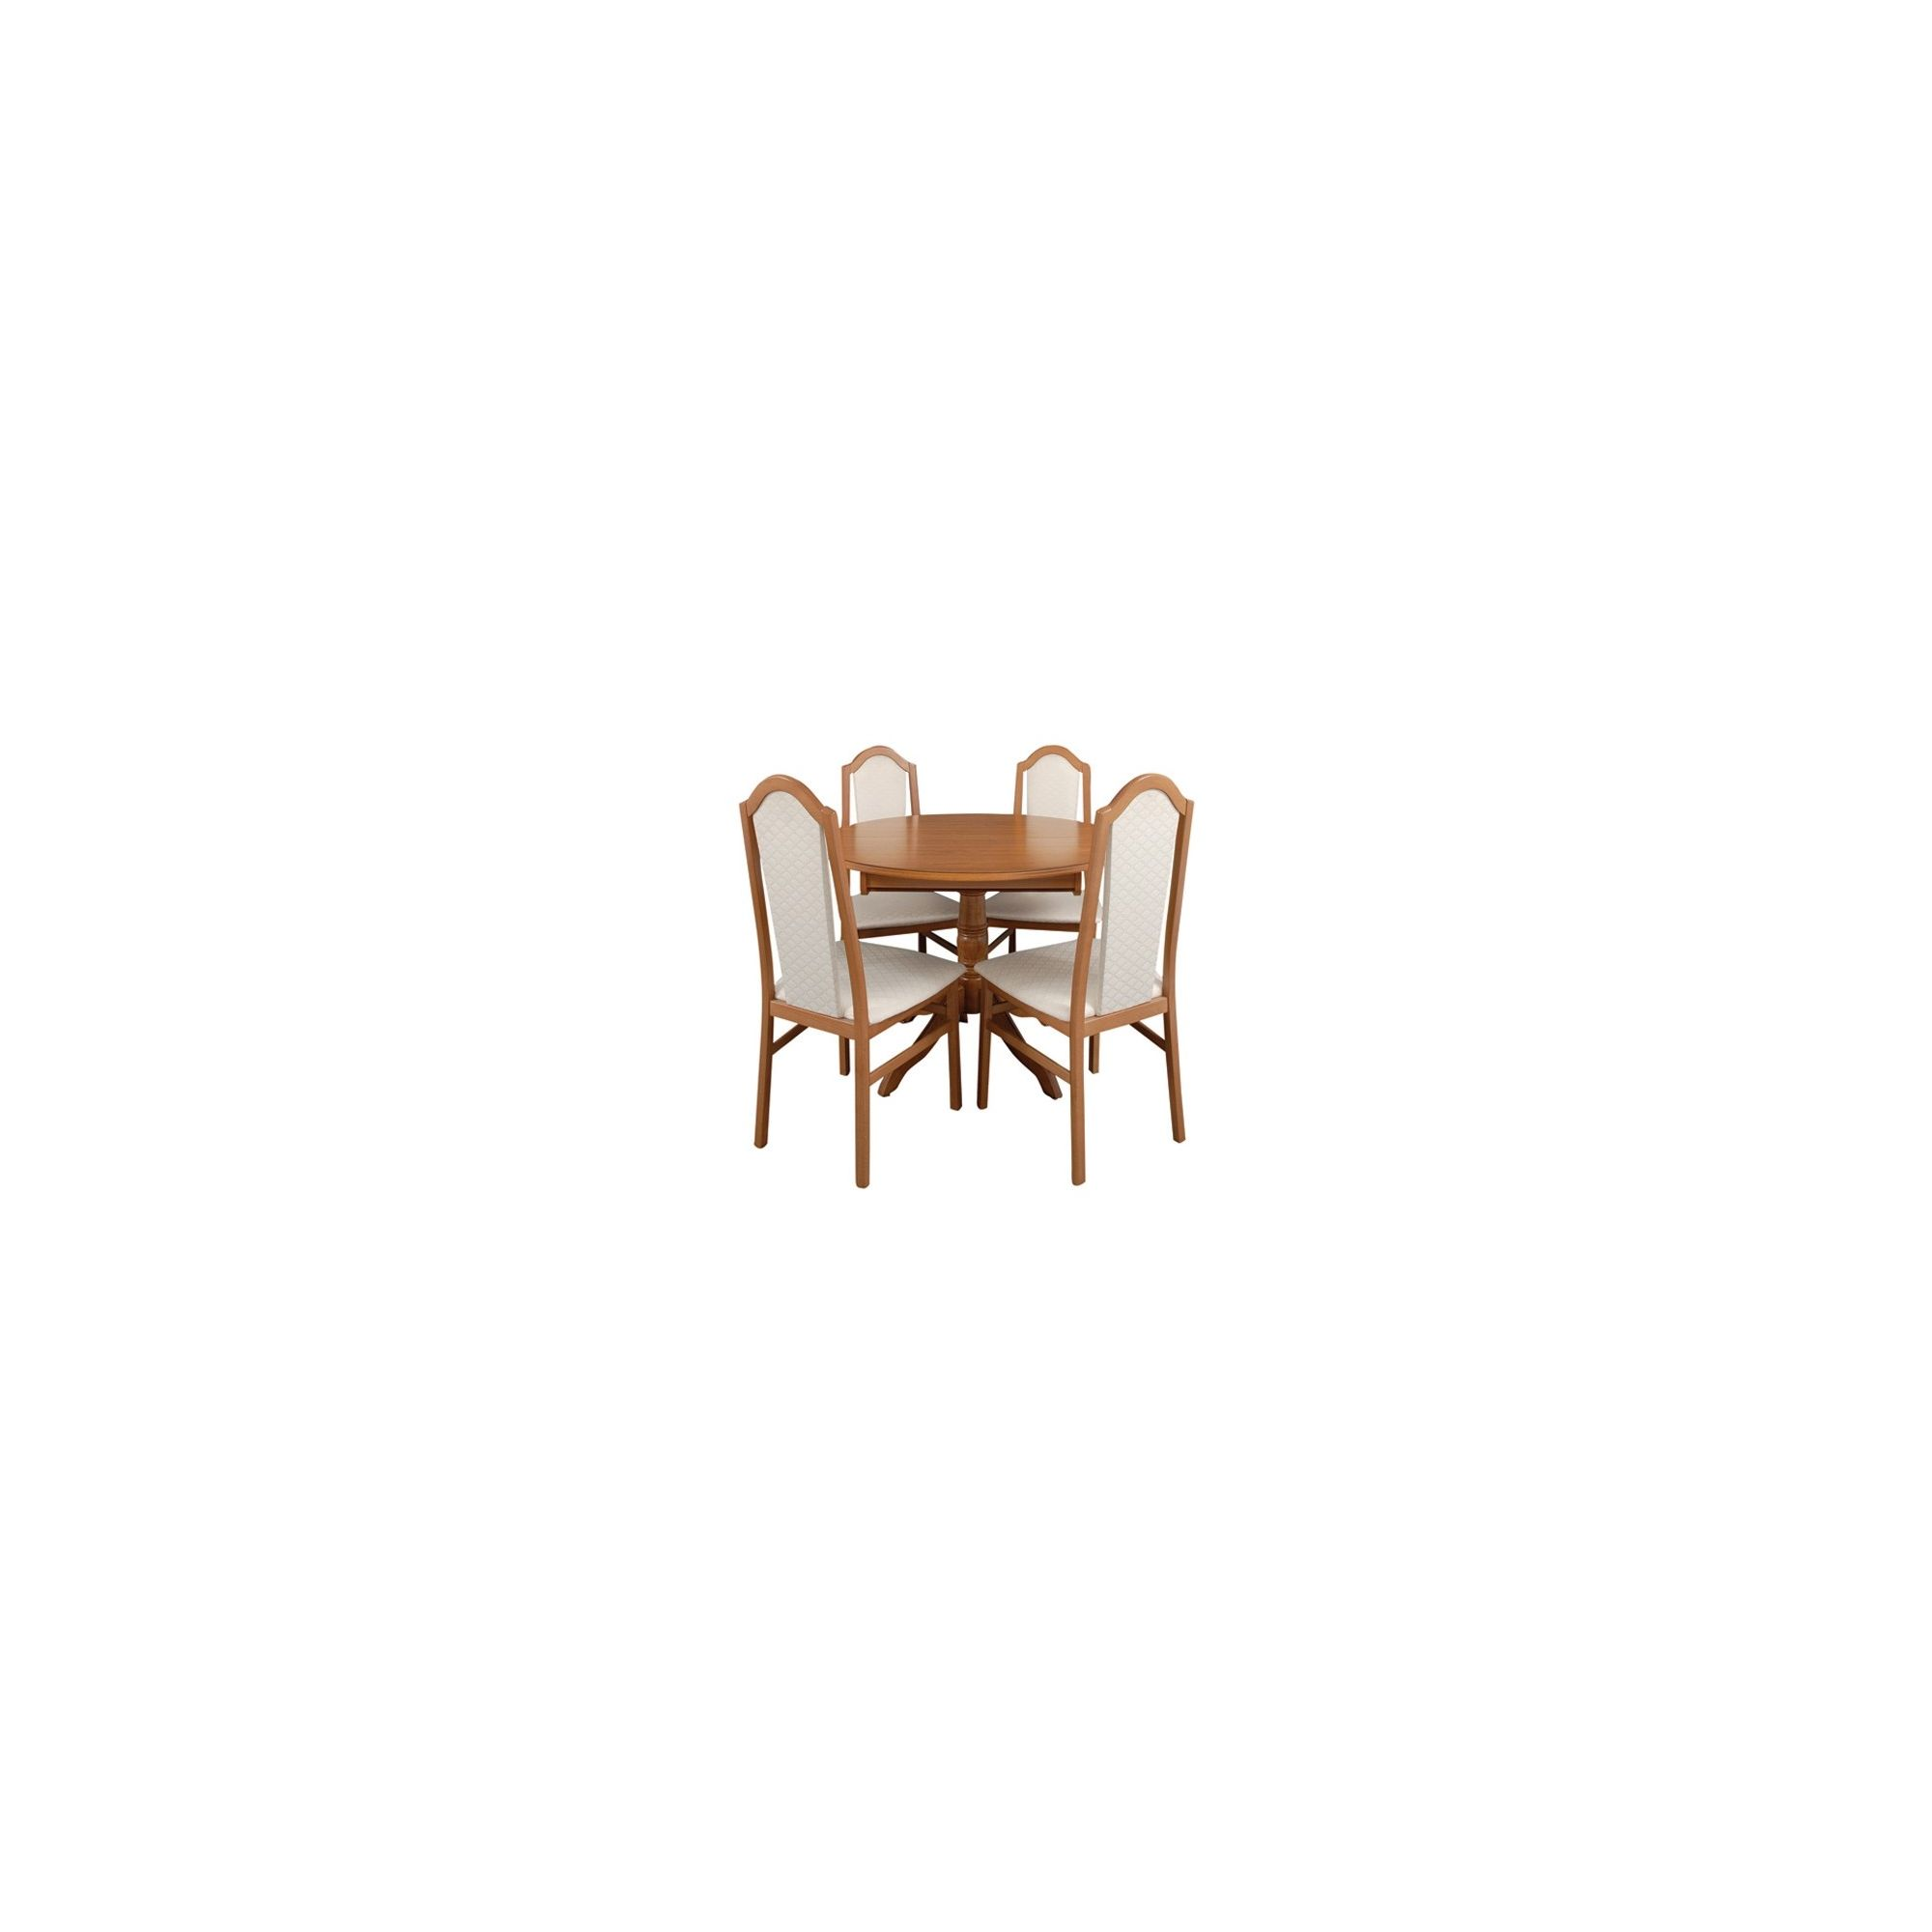 Caxton Lichfield Single Pedestal 4 Chair Dining Set at Tesco Direct